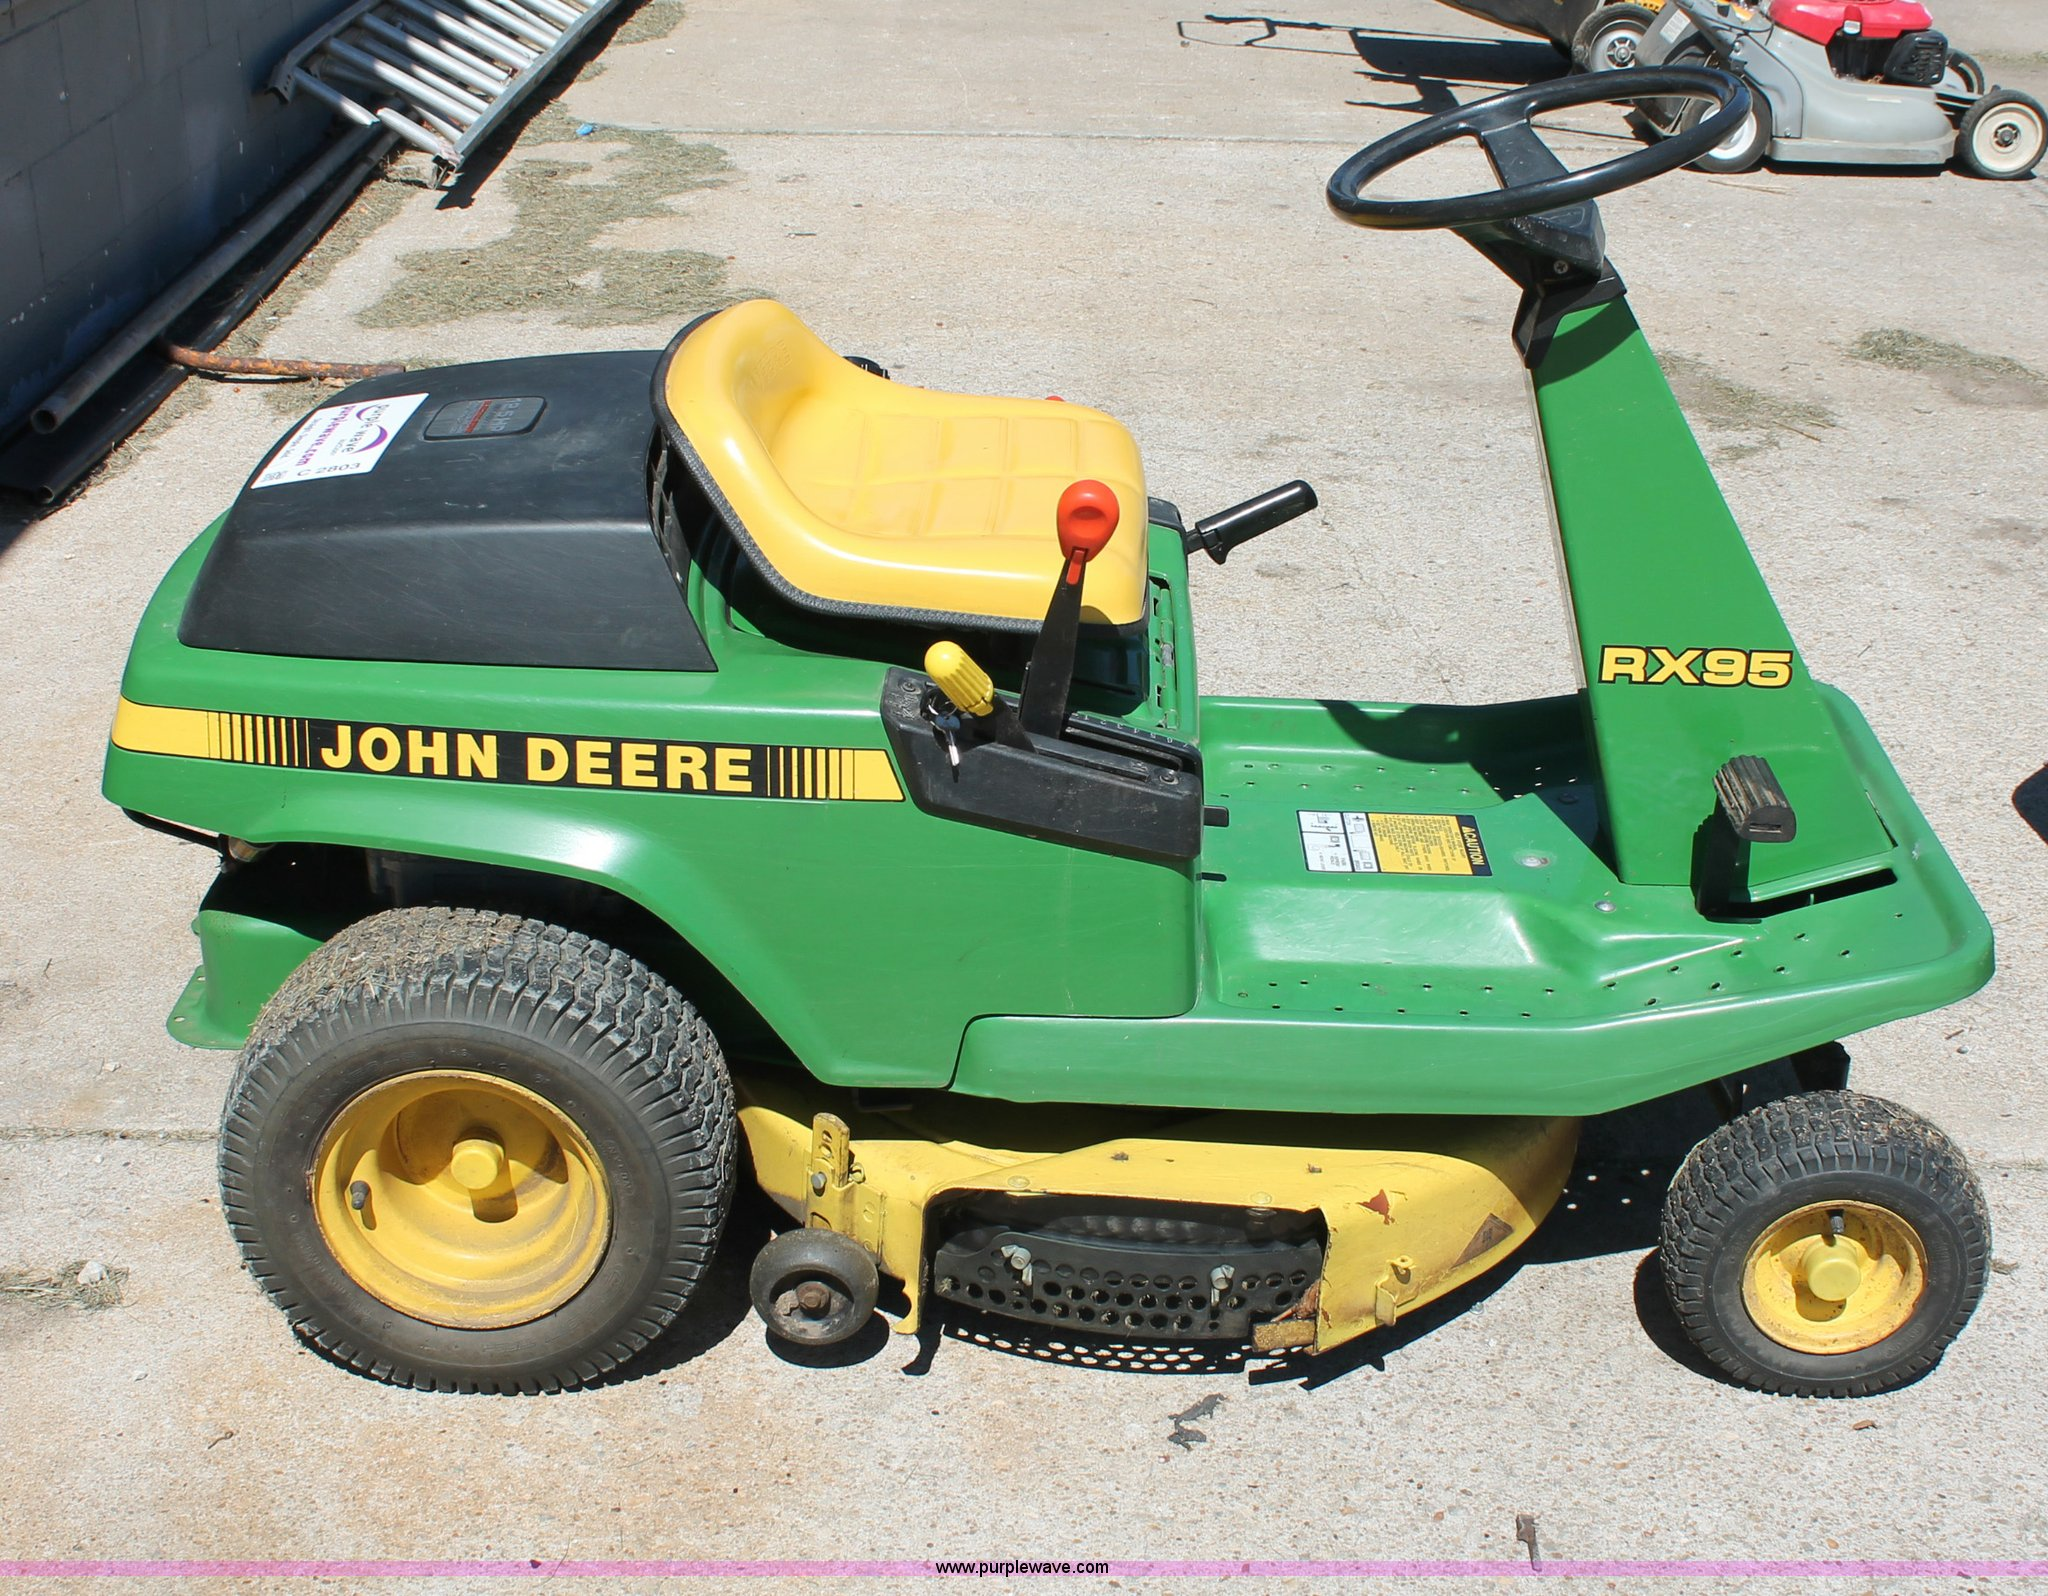 Manual For John Deere Rx95. John Deere Rx95 Lawn Mower Item C2803 Sold September 19 Rh Purplewave Lx173 Manual Js46. John Deere. Find John Deere Rx95 Belt Diagram At Scoala.co